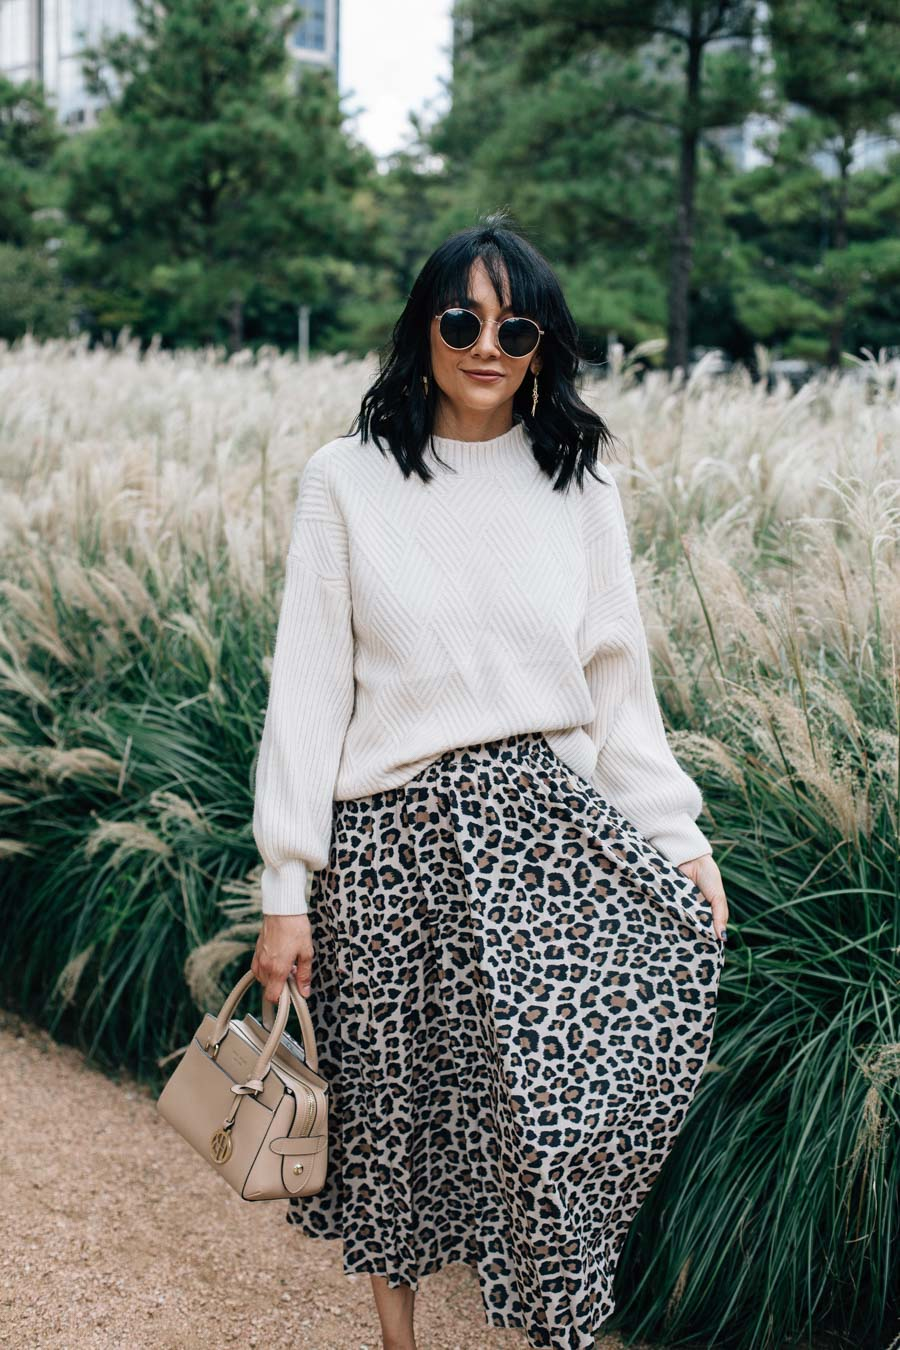 Lilly Beltran wearing a leopard print skirt with an oversized sweater and black pumps.